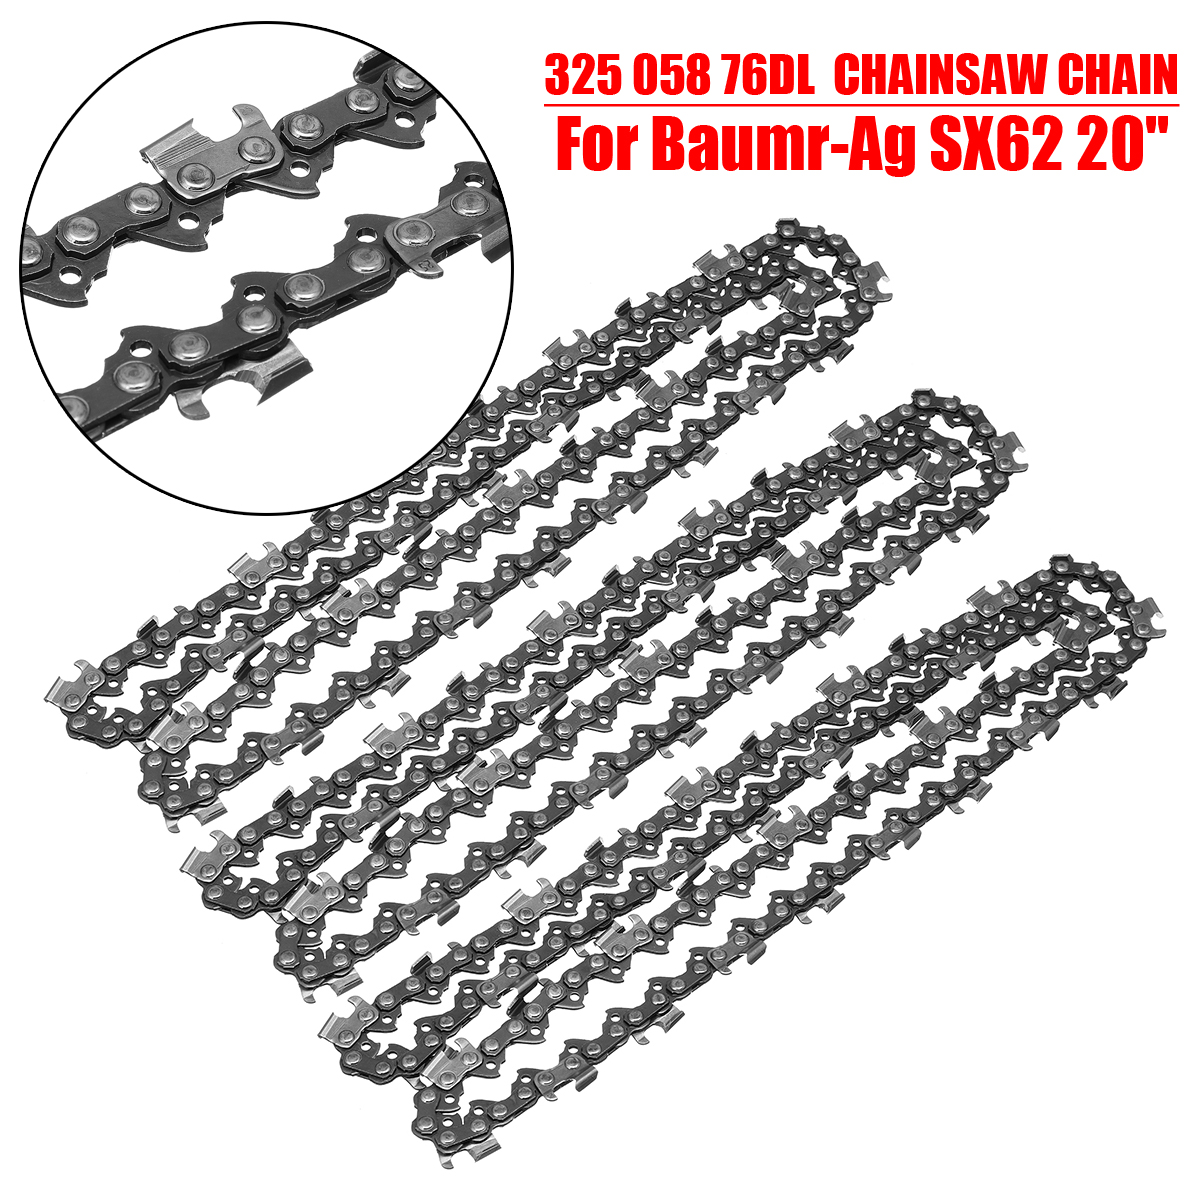 3pcs 20'' 325 058 76DL Chainsaw Chain Saw Replaces for Baumr-Ag SX62 Electrical Tools Accessories(China)